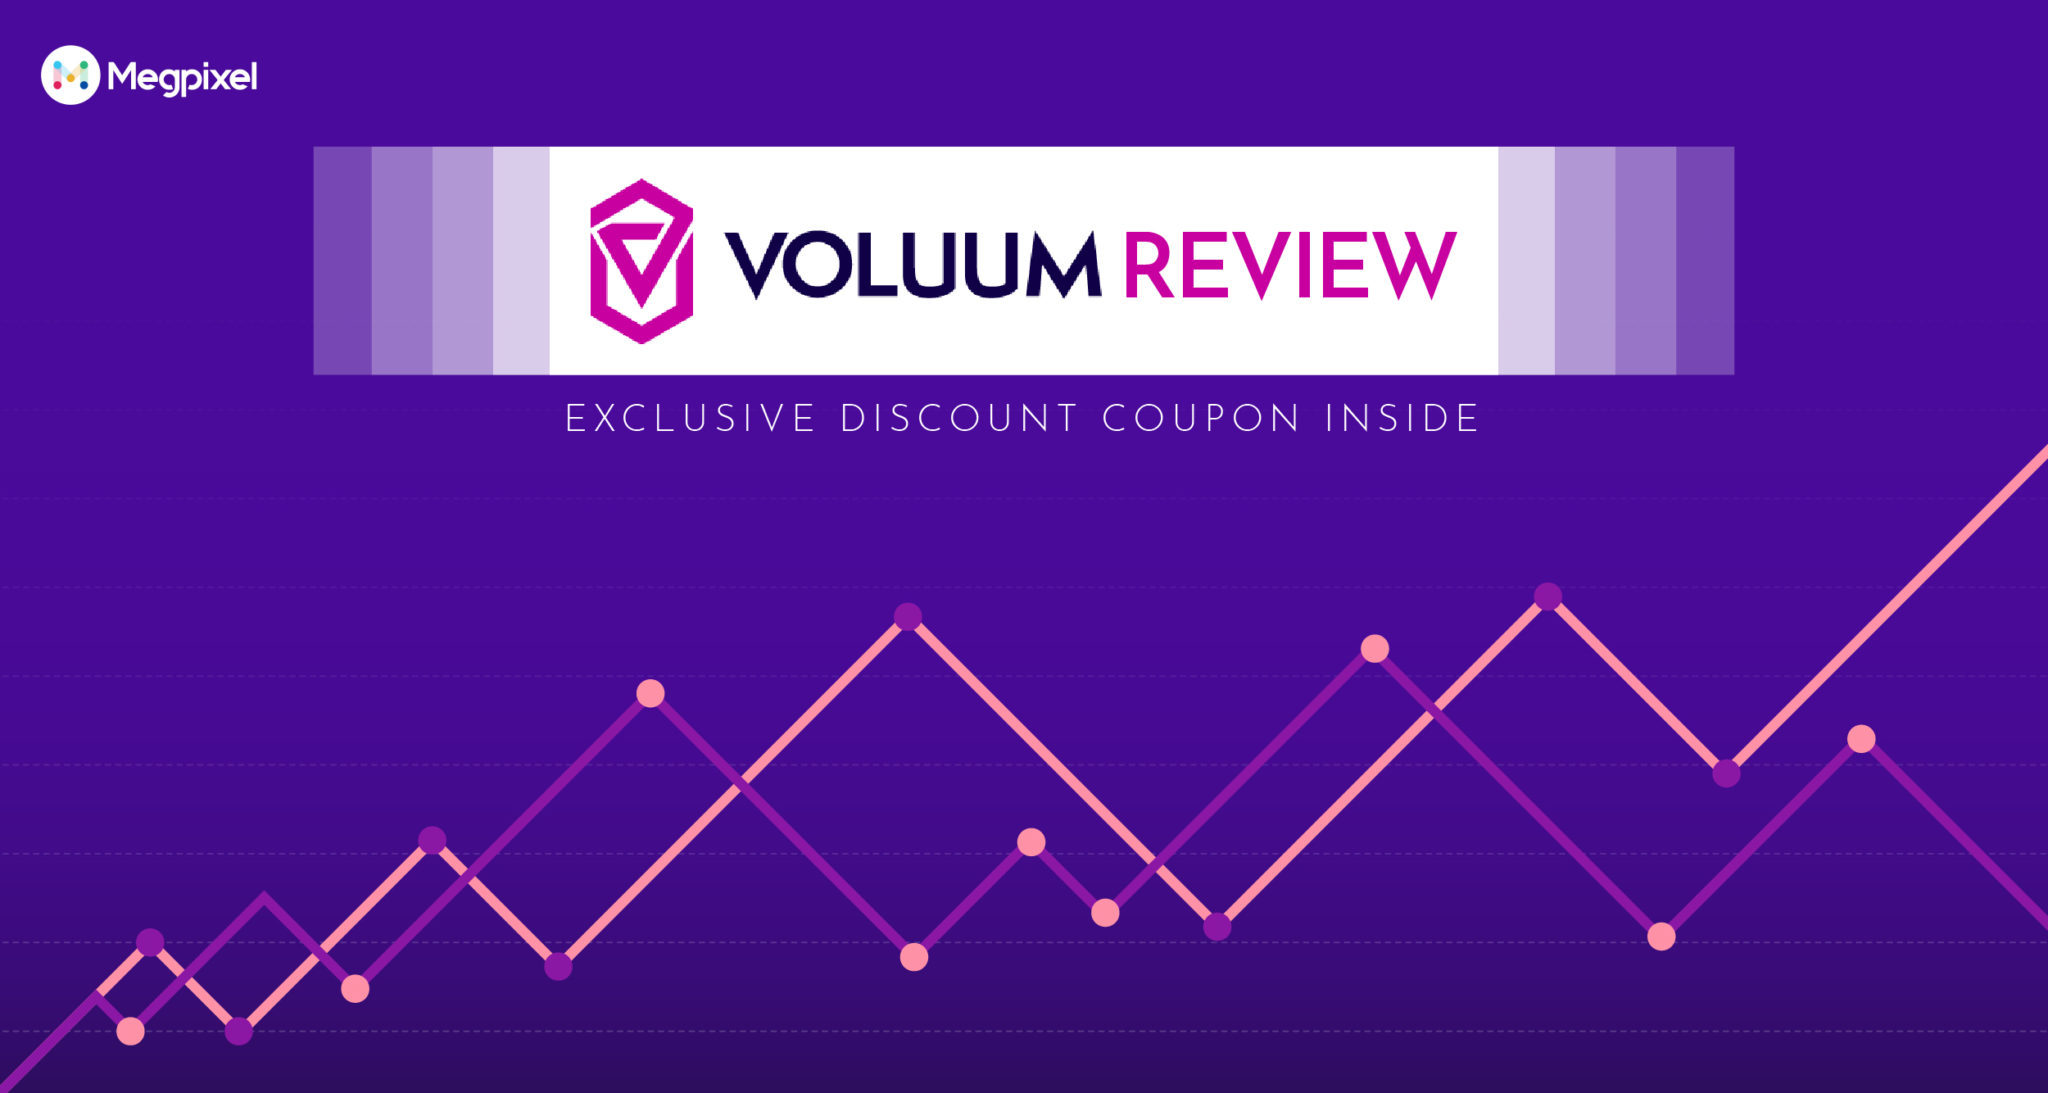 Voluum Review 2019 + Coupon. Exclusive Discount Inside